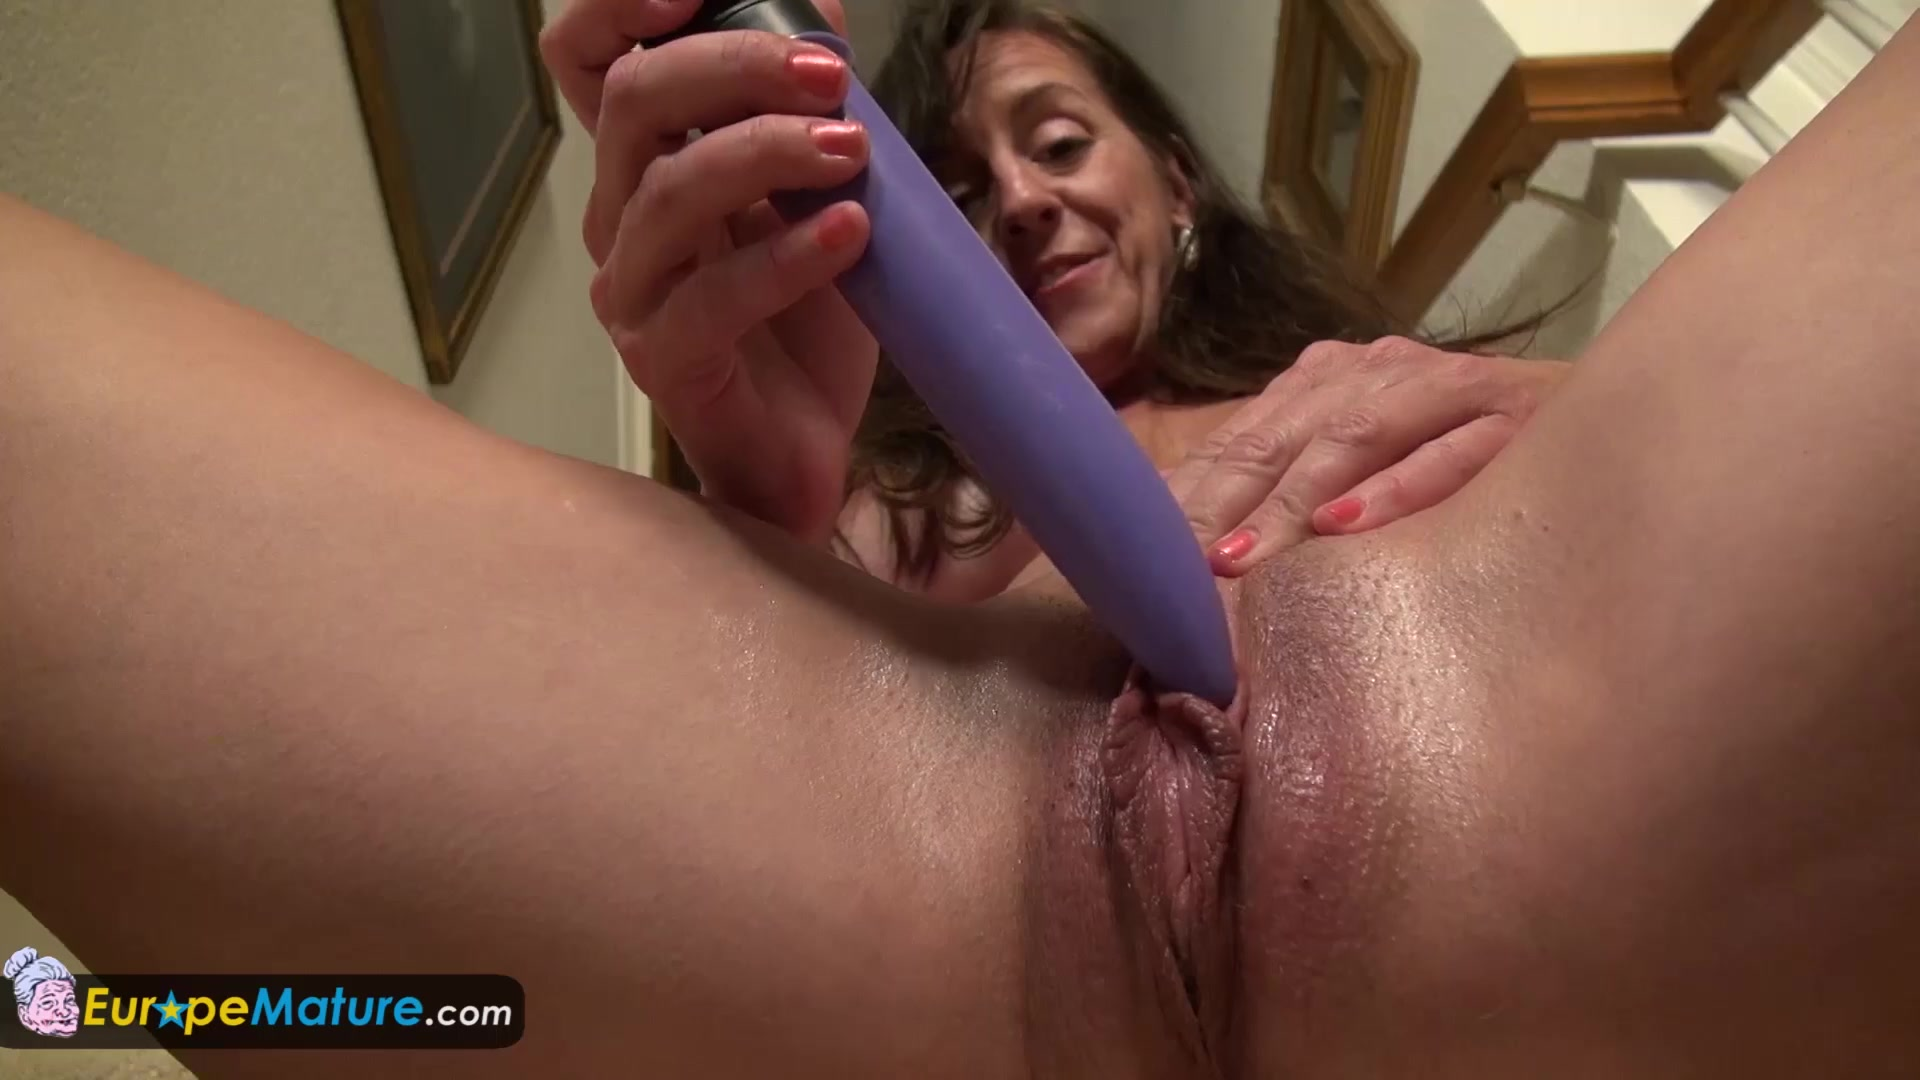 EUROPEMATURE -  Rose super hot and decides to play